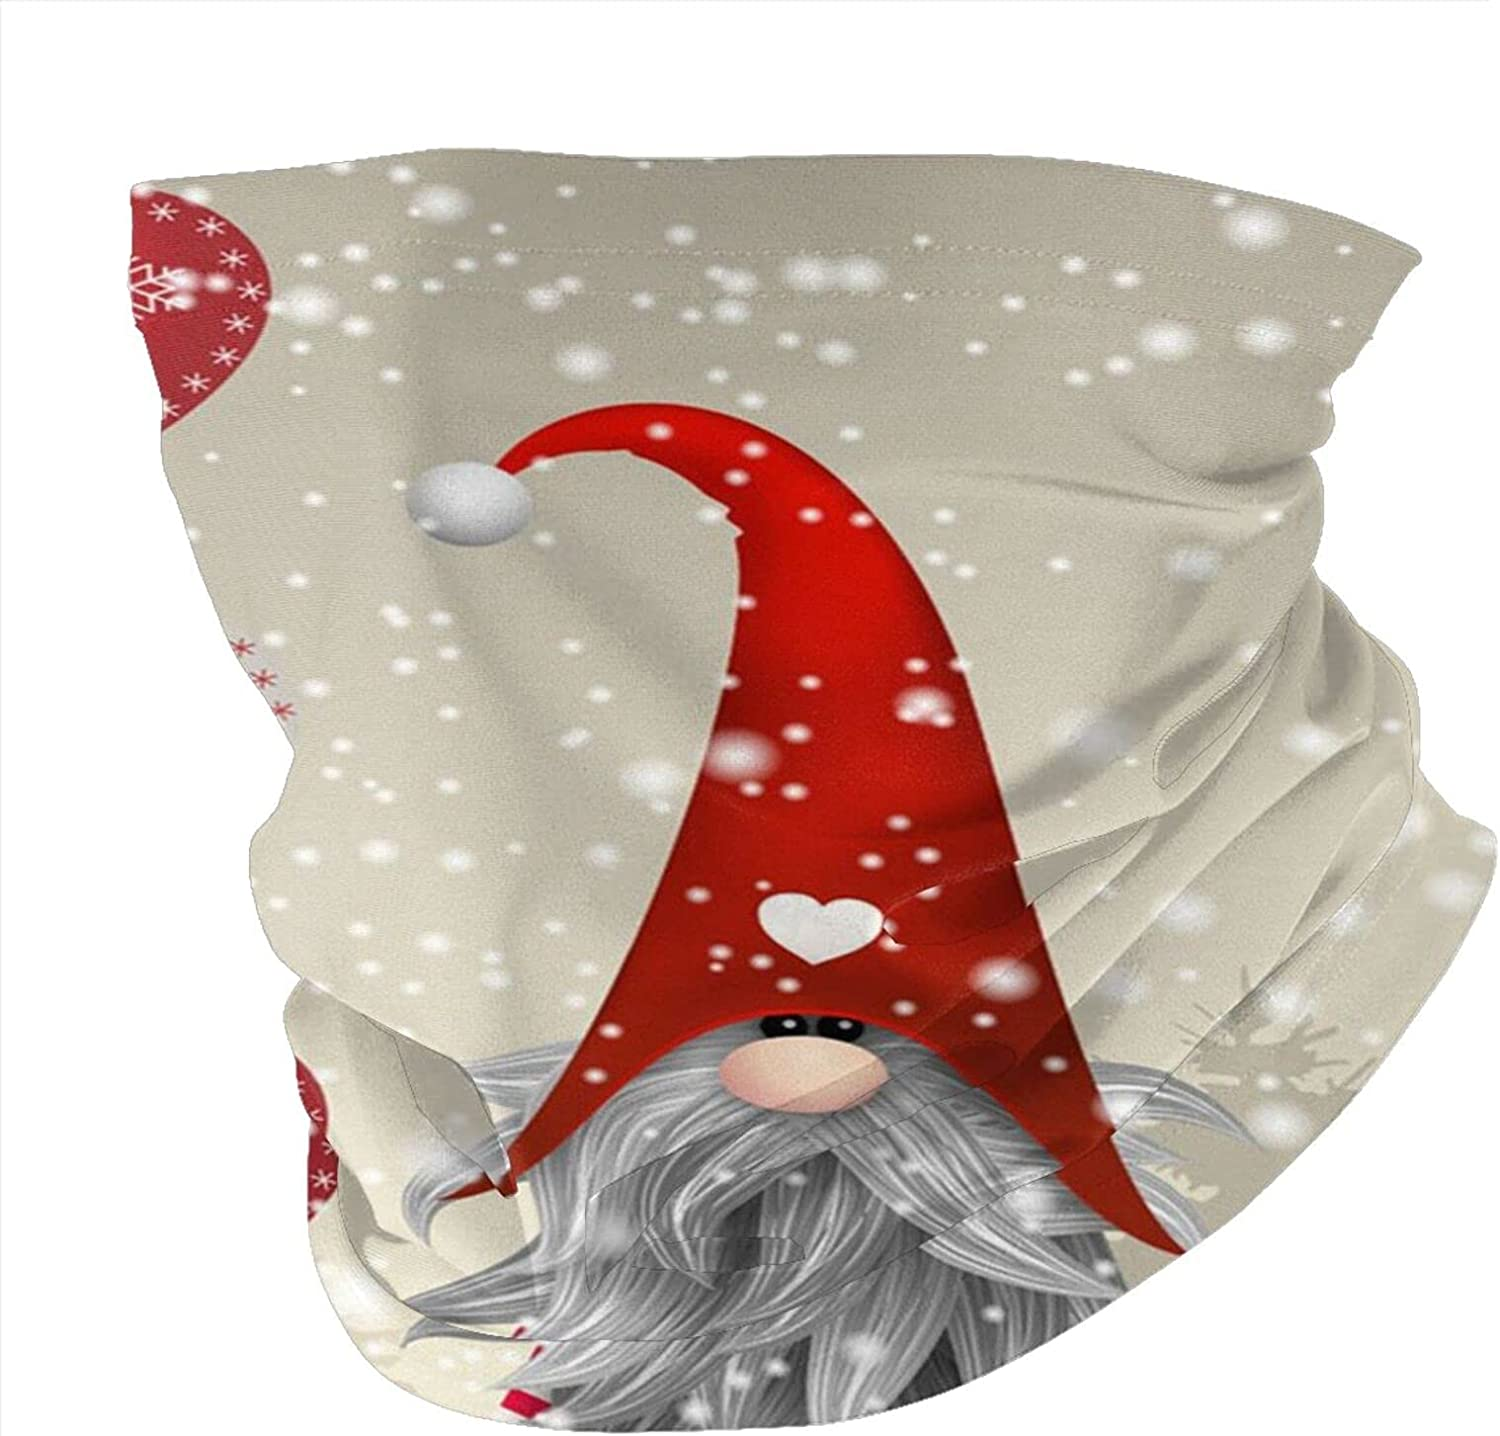 Variety Head Scarf,Winter Christmas Gnome Hand Towels Xmas GiftsVariety Headscarves Men And Women Multi-Function Headscarves.